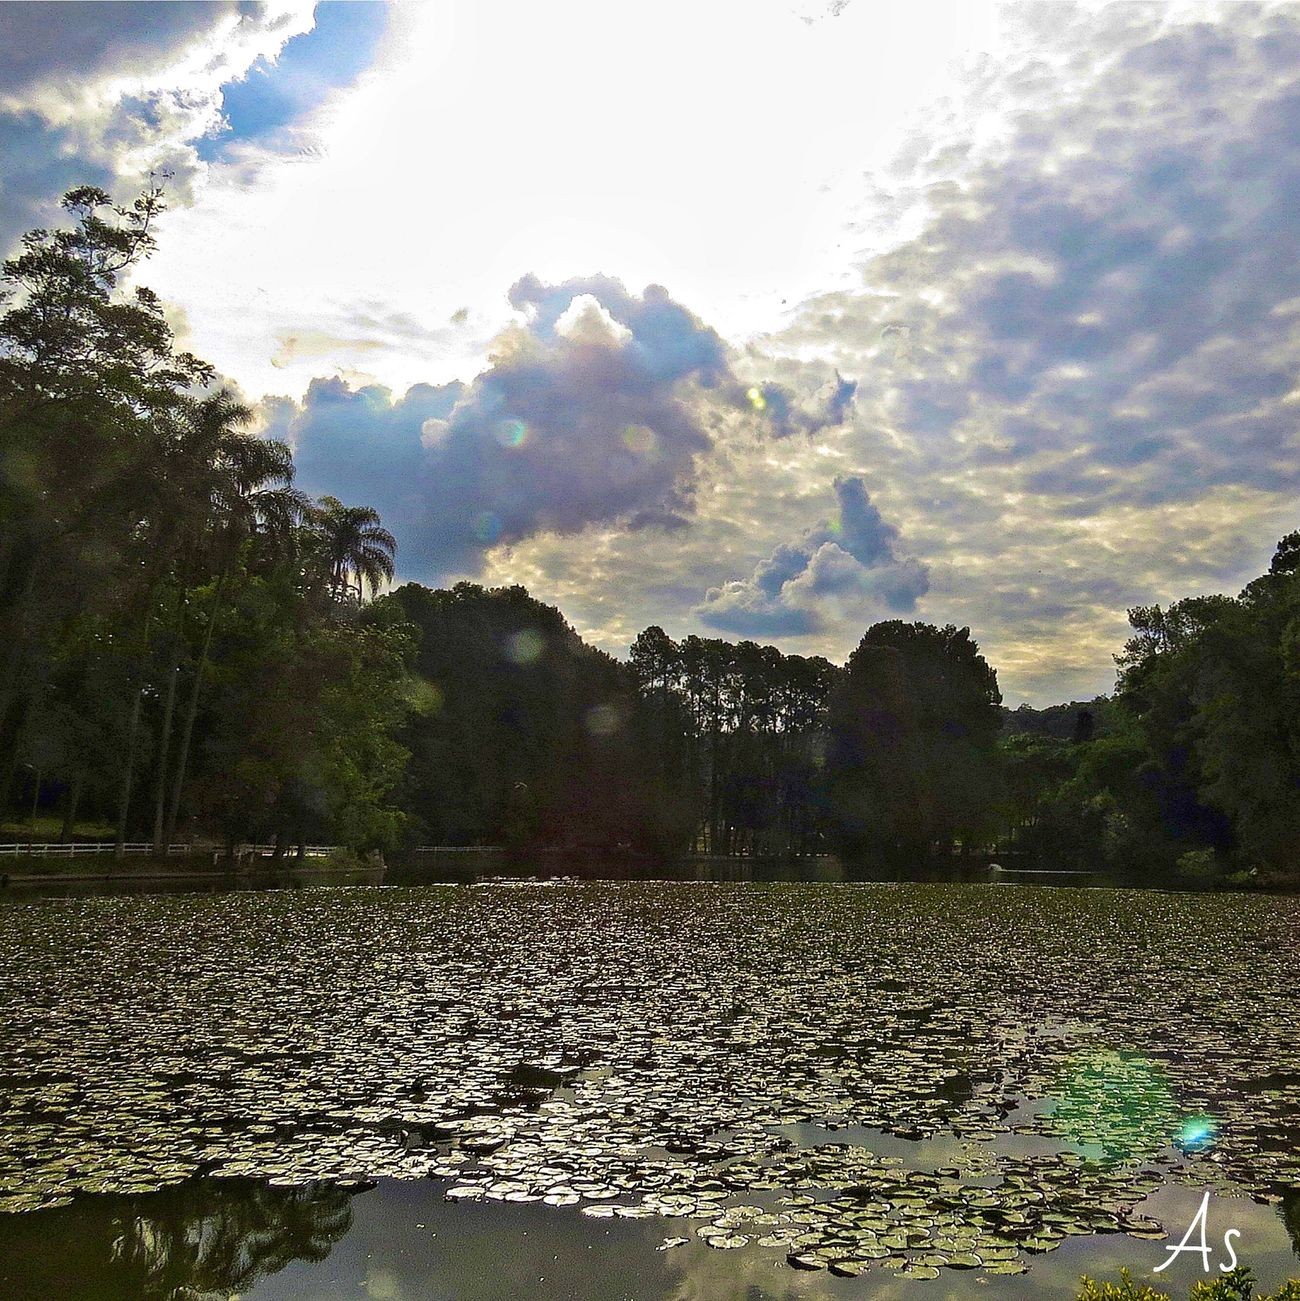 Horto Florestal - S. Paulo Tree Water Nature Sky Reflection Tranquility Scenics Beauty In Nature Outdoors Tranquil Scene Cloud - Sky Eye4photography  EyeEm Best Shots Reflection First Eyeem Photo Nature